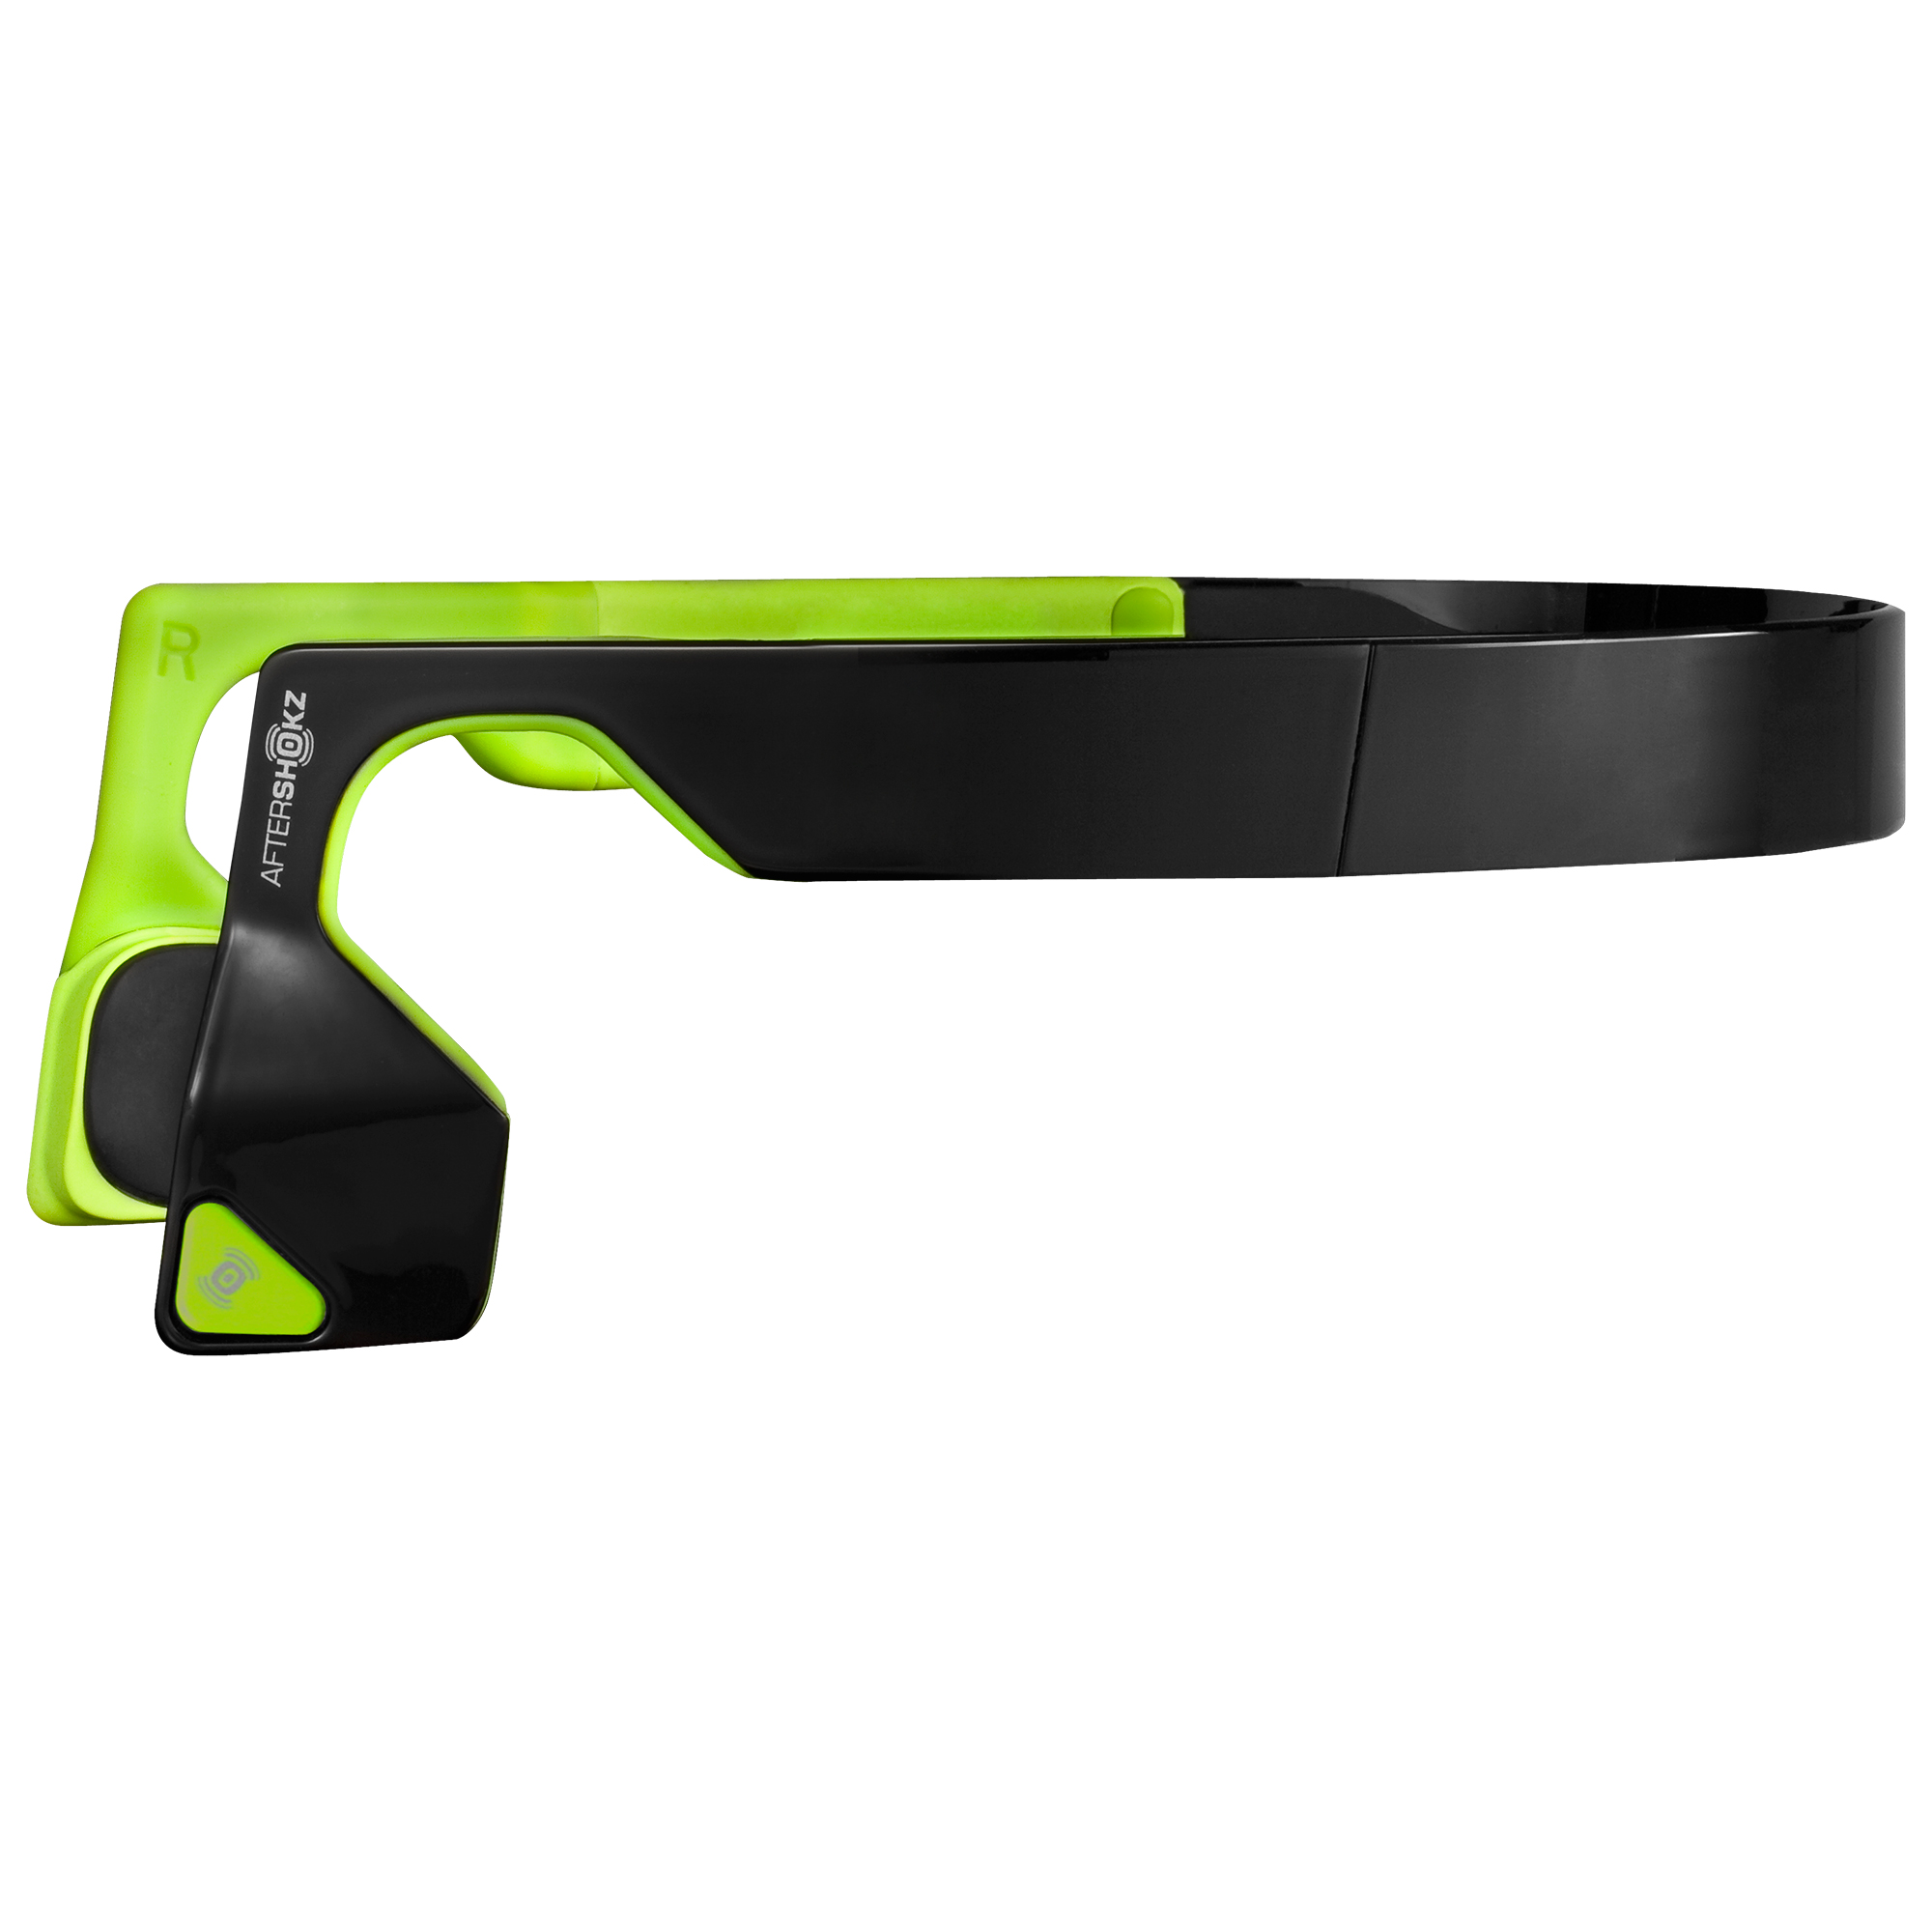 Image of AfterShokz Bluez 2 Bluetooth Wireless Headphones - Green